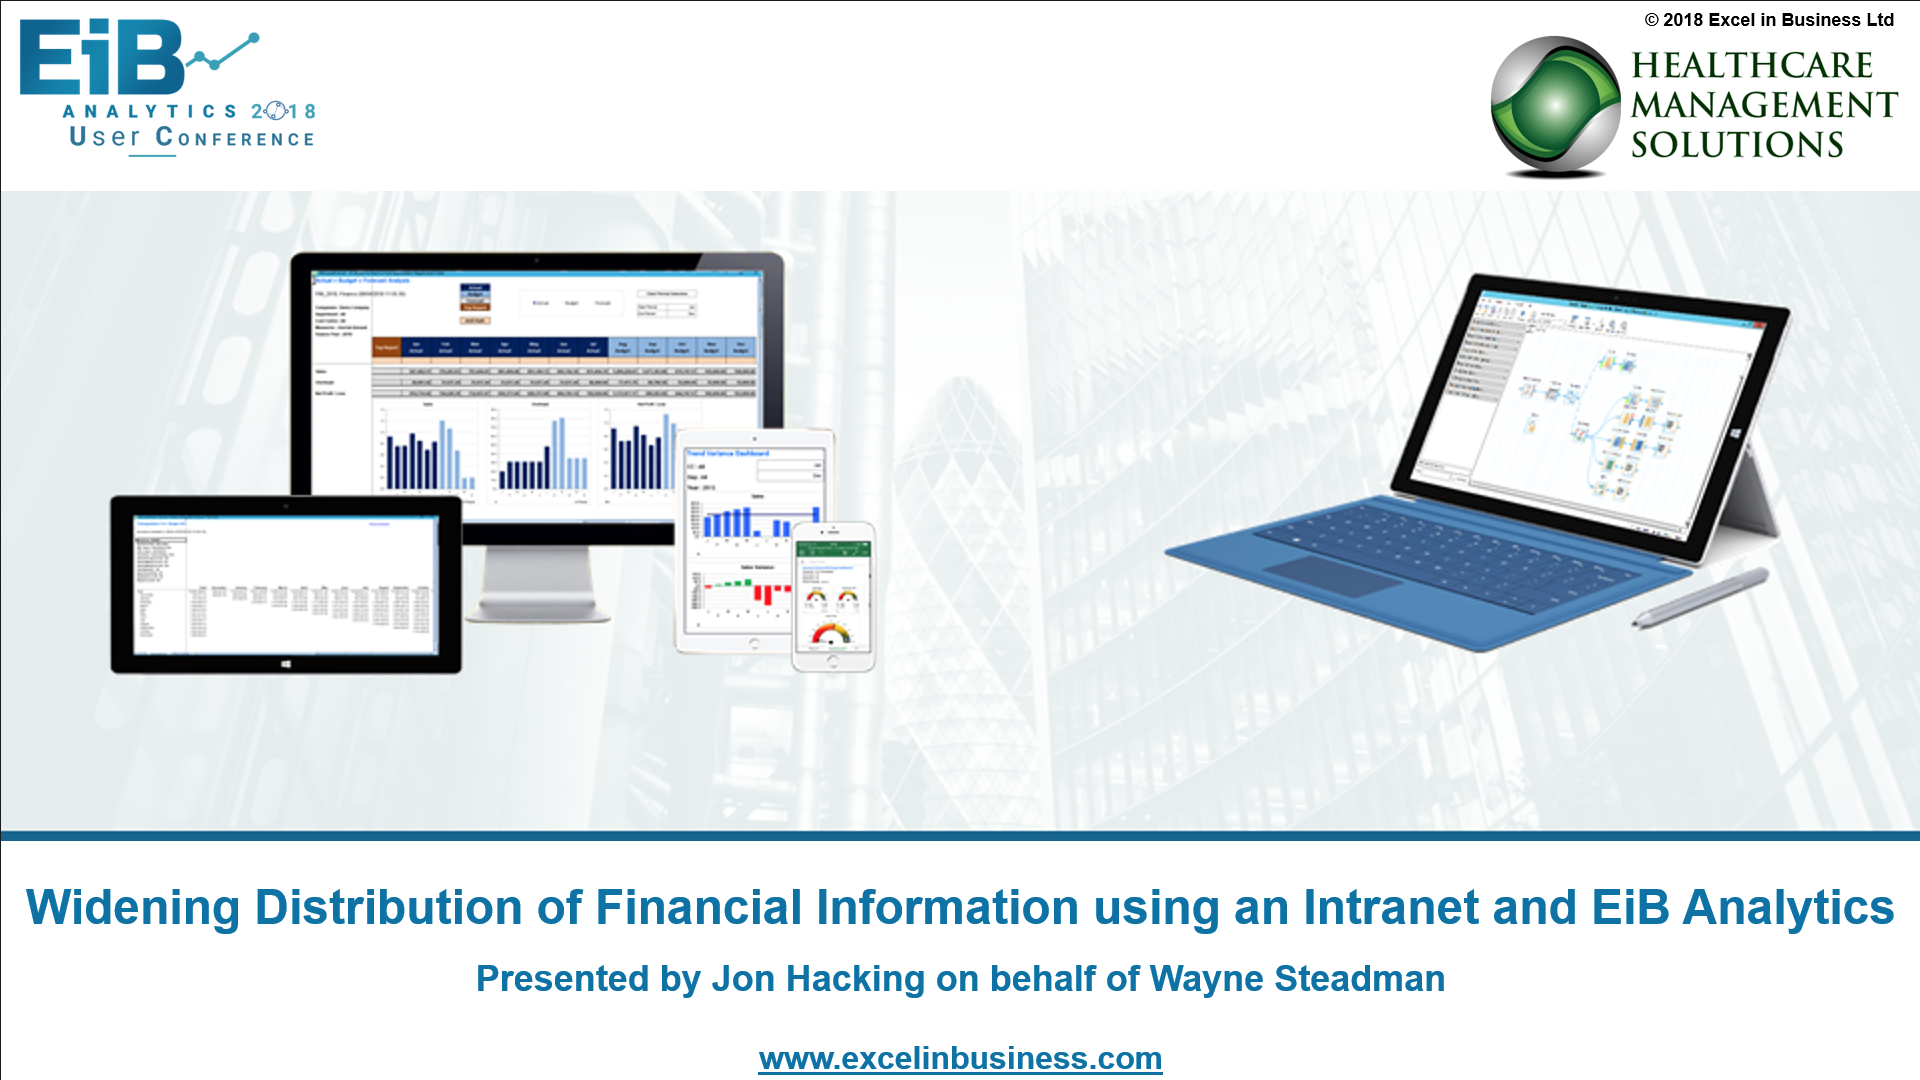 4.9 - Finance Stream - Widening Distribution of Financial Information using an Intranet and EiB Analytics - Jon Hacking